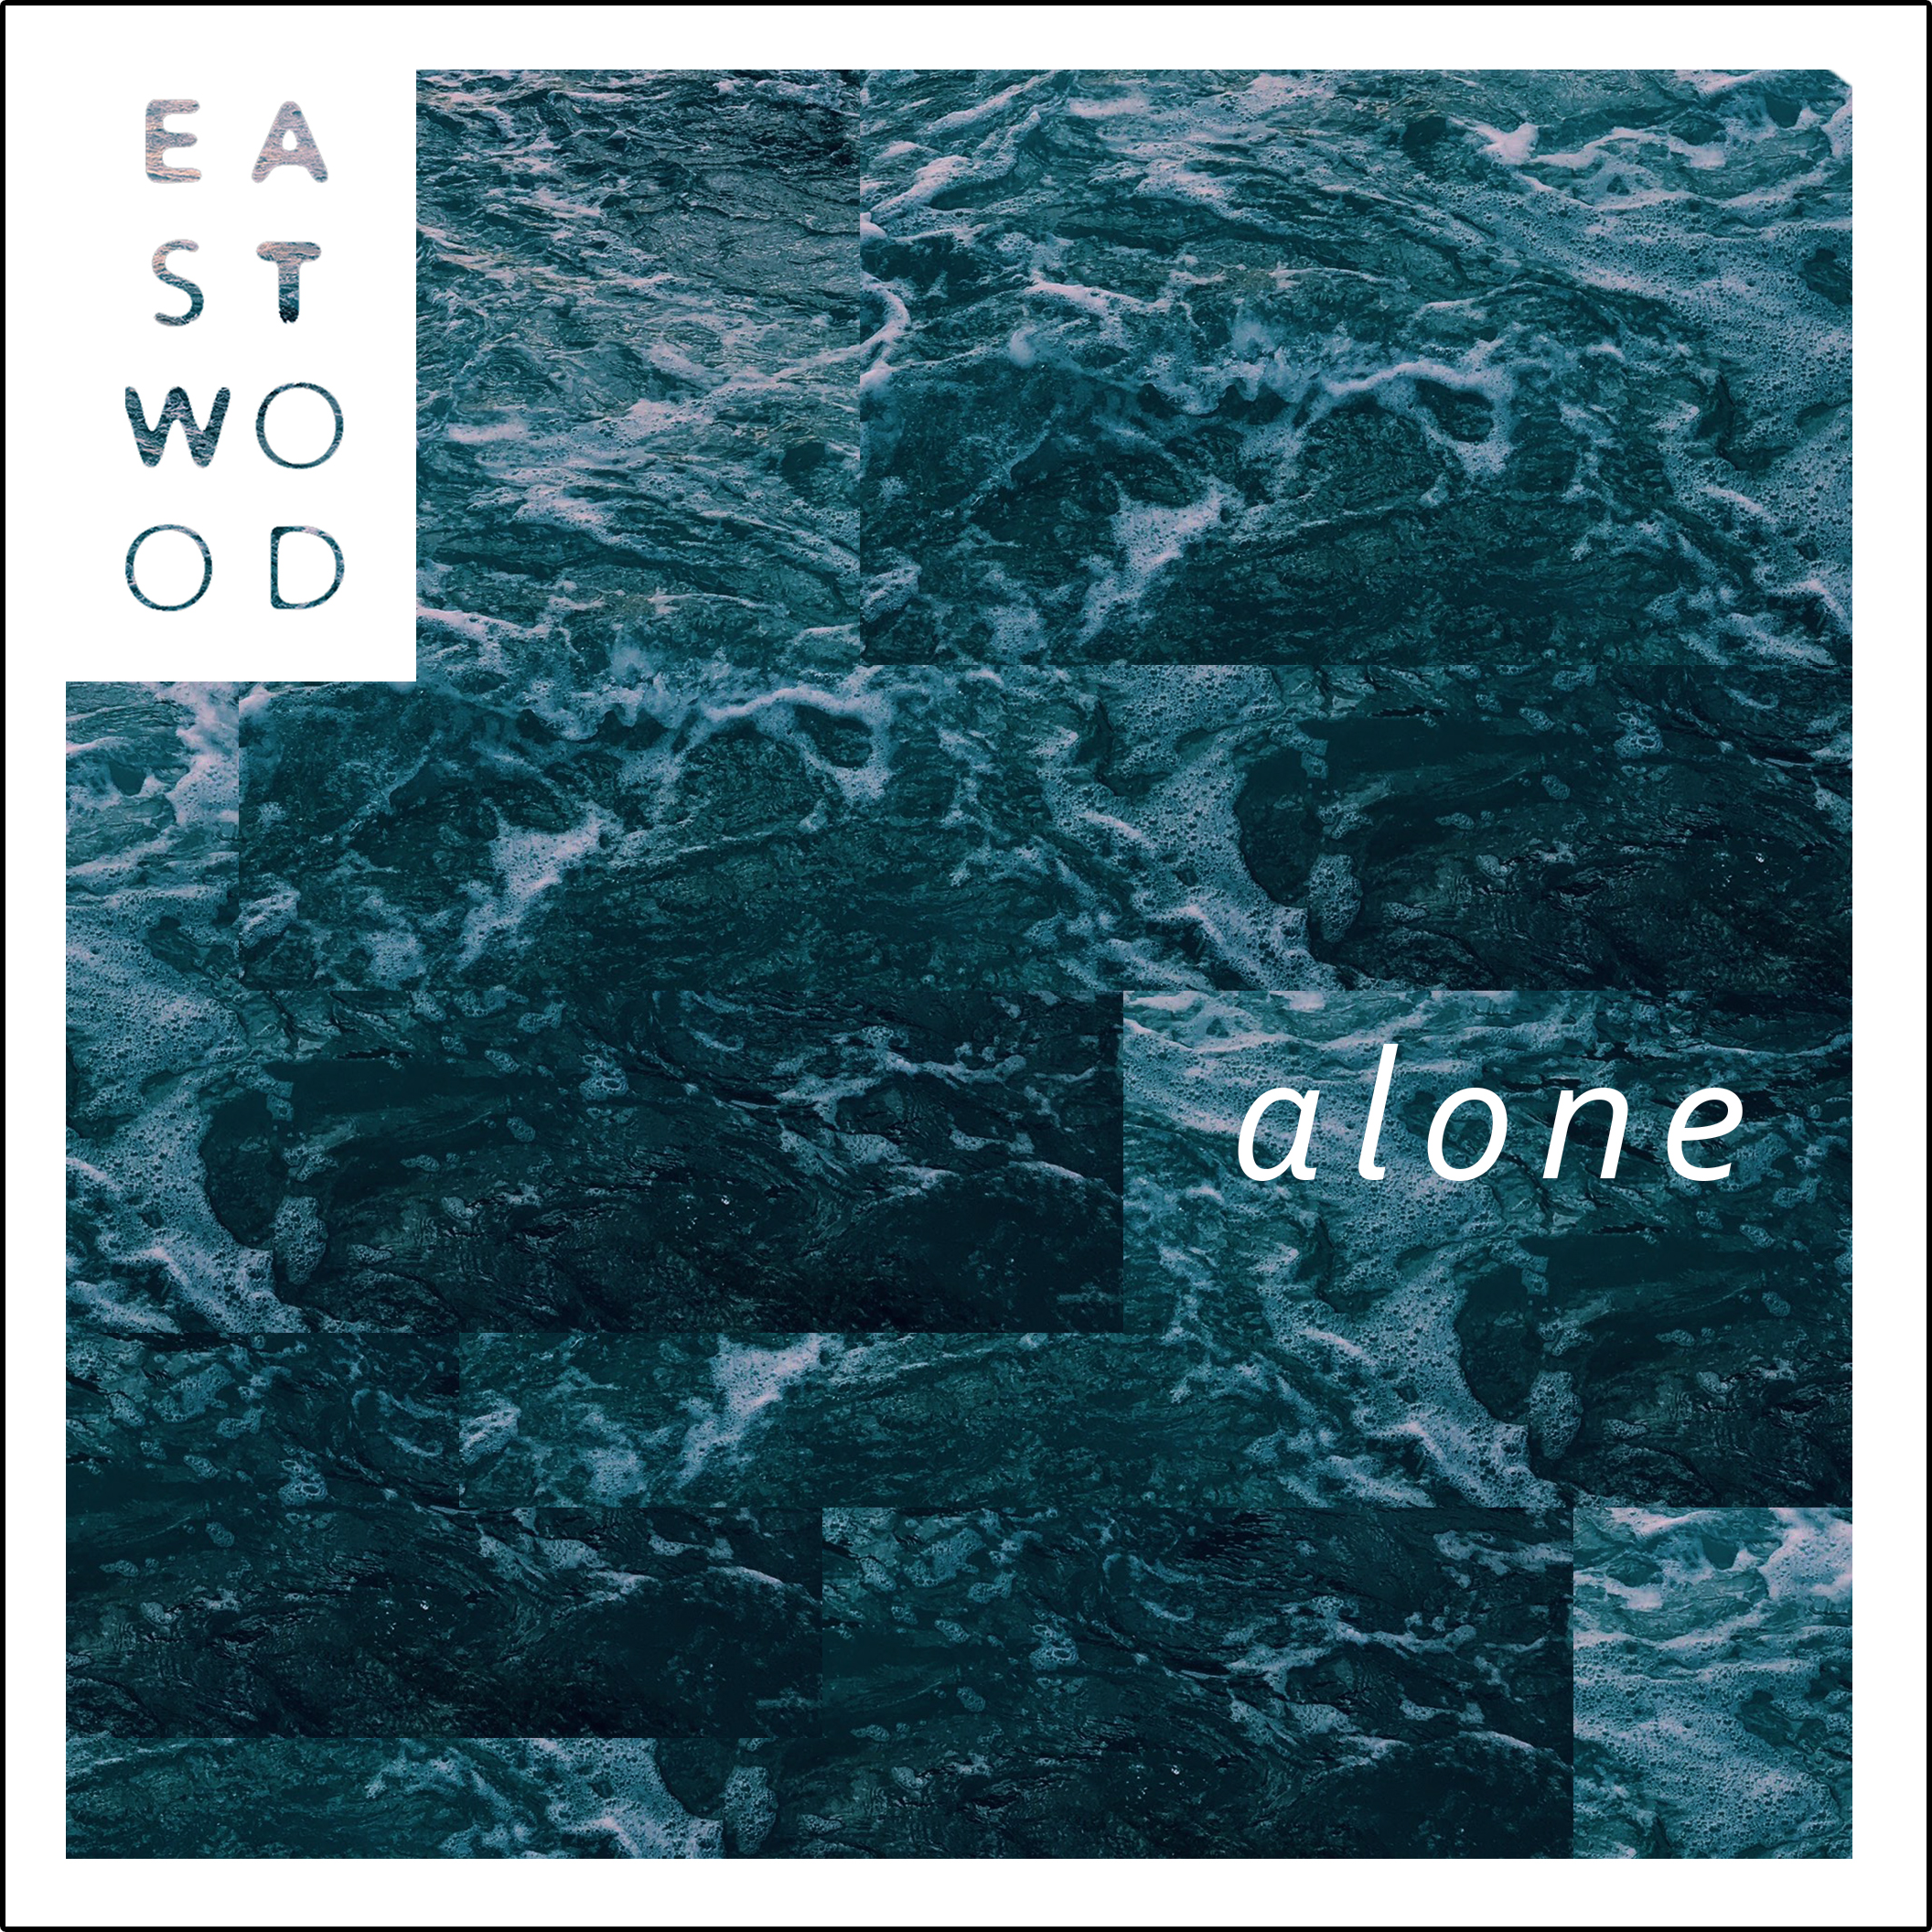 eastwood---alone-2.png